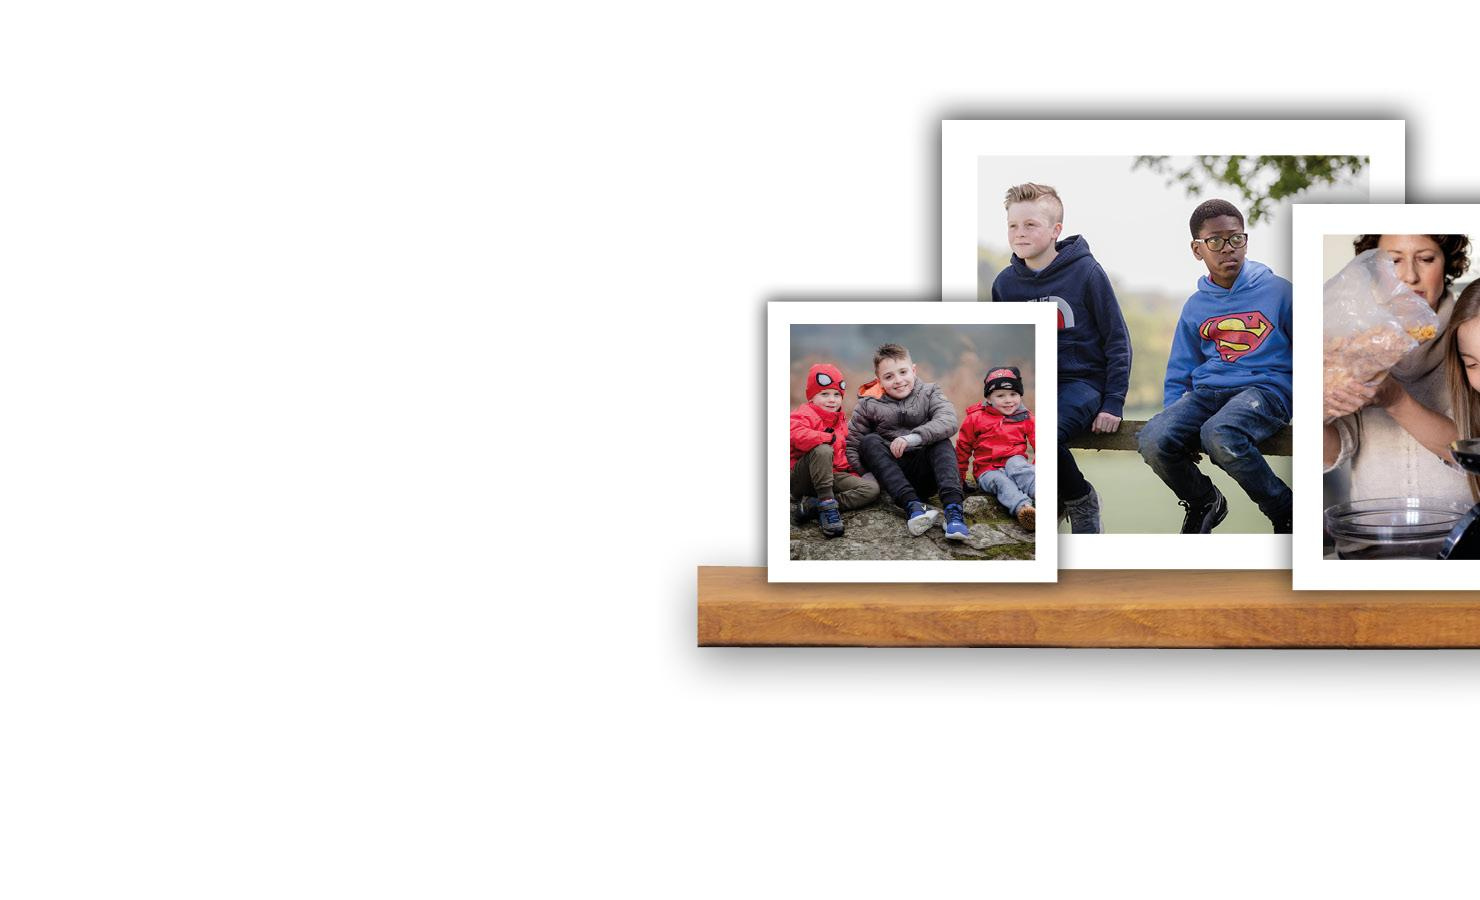 Photo frames on shelf showing different groups of children